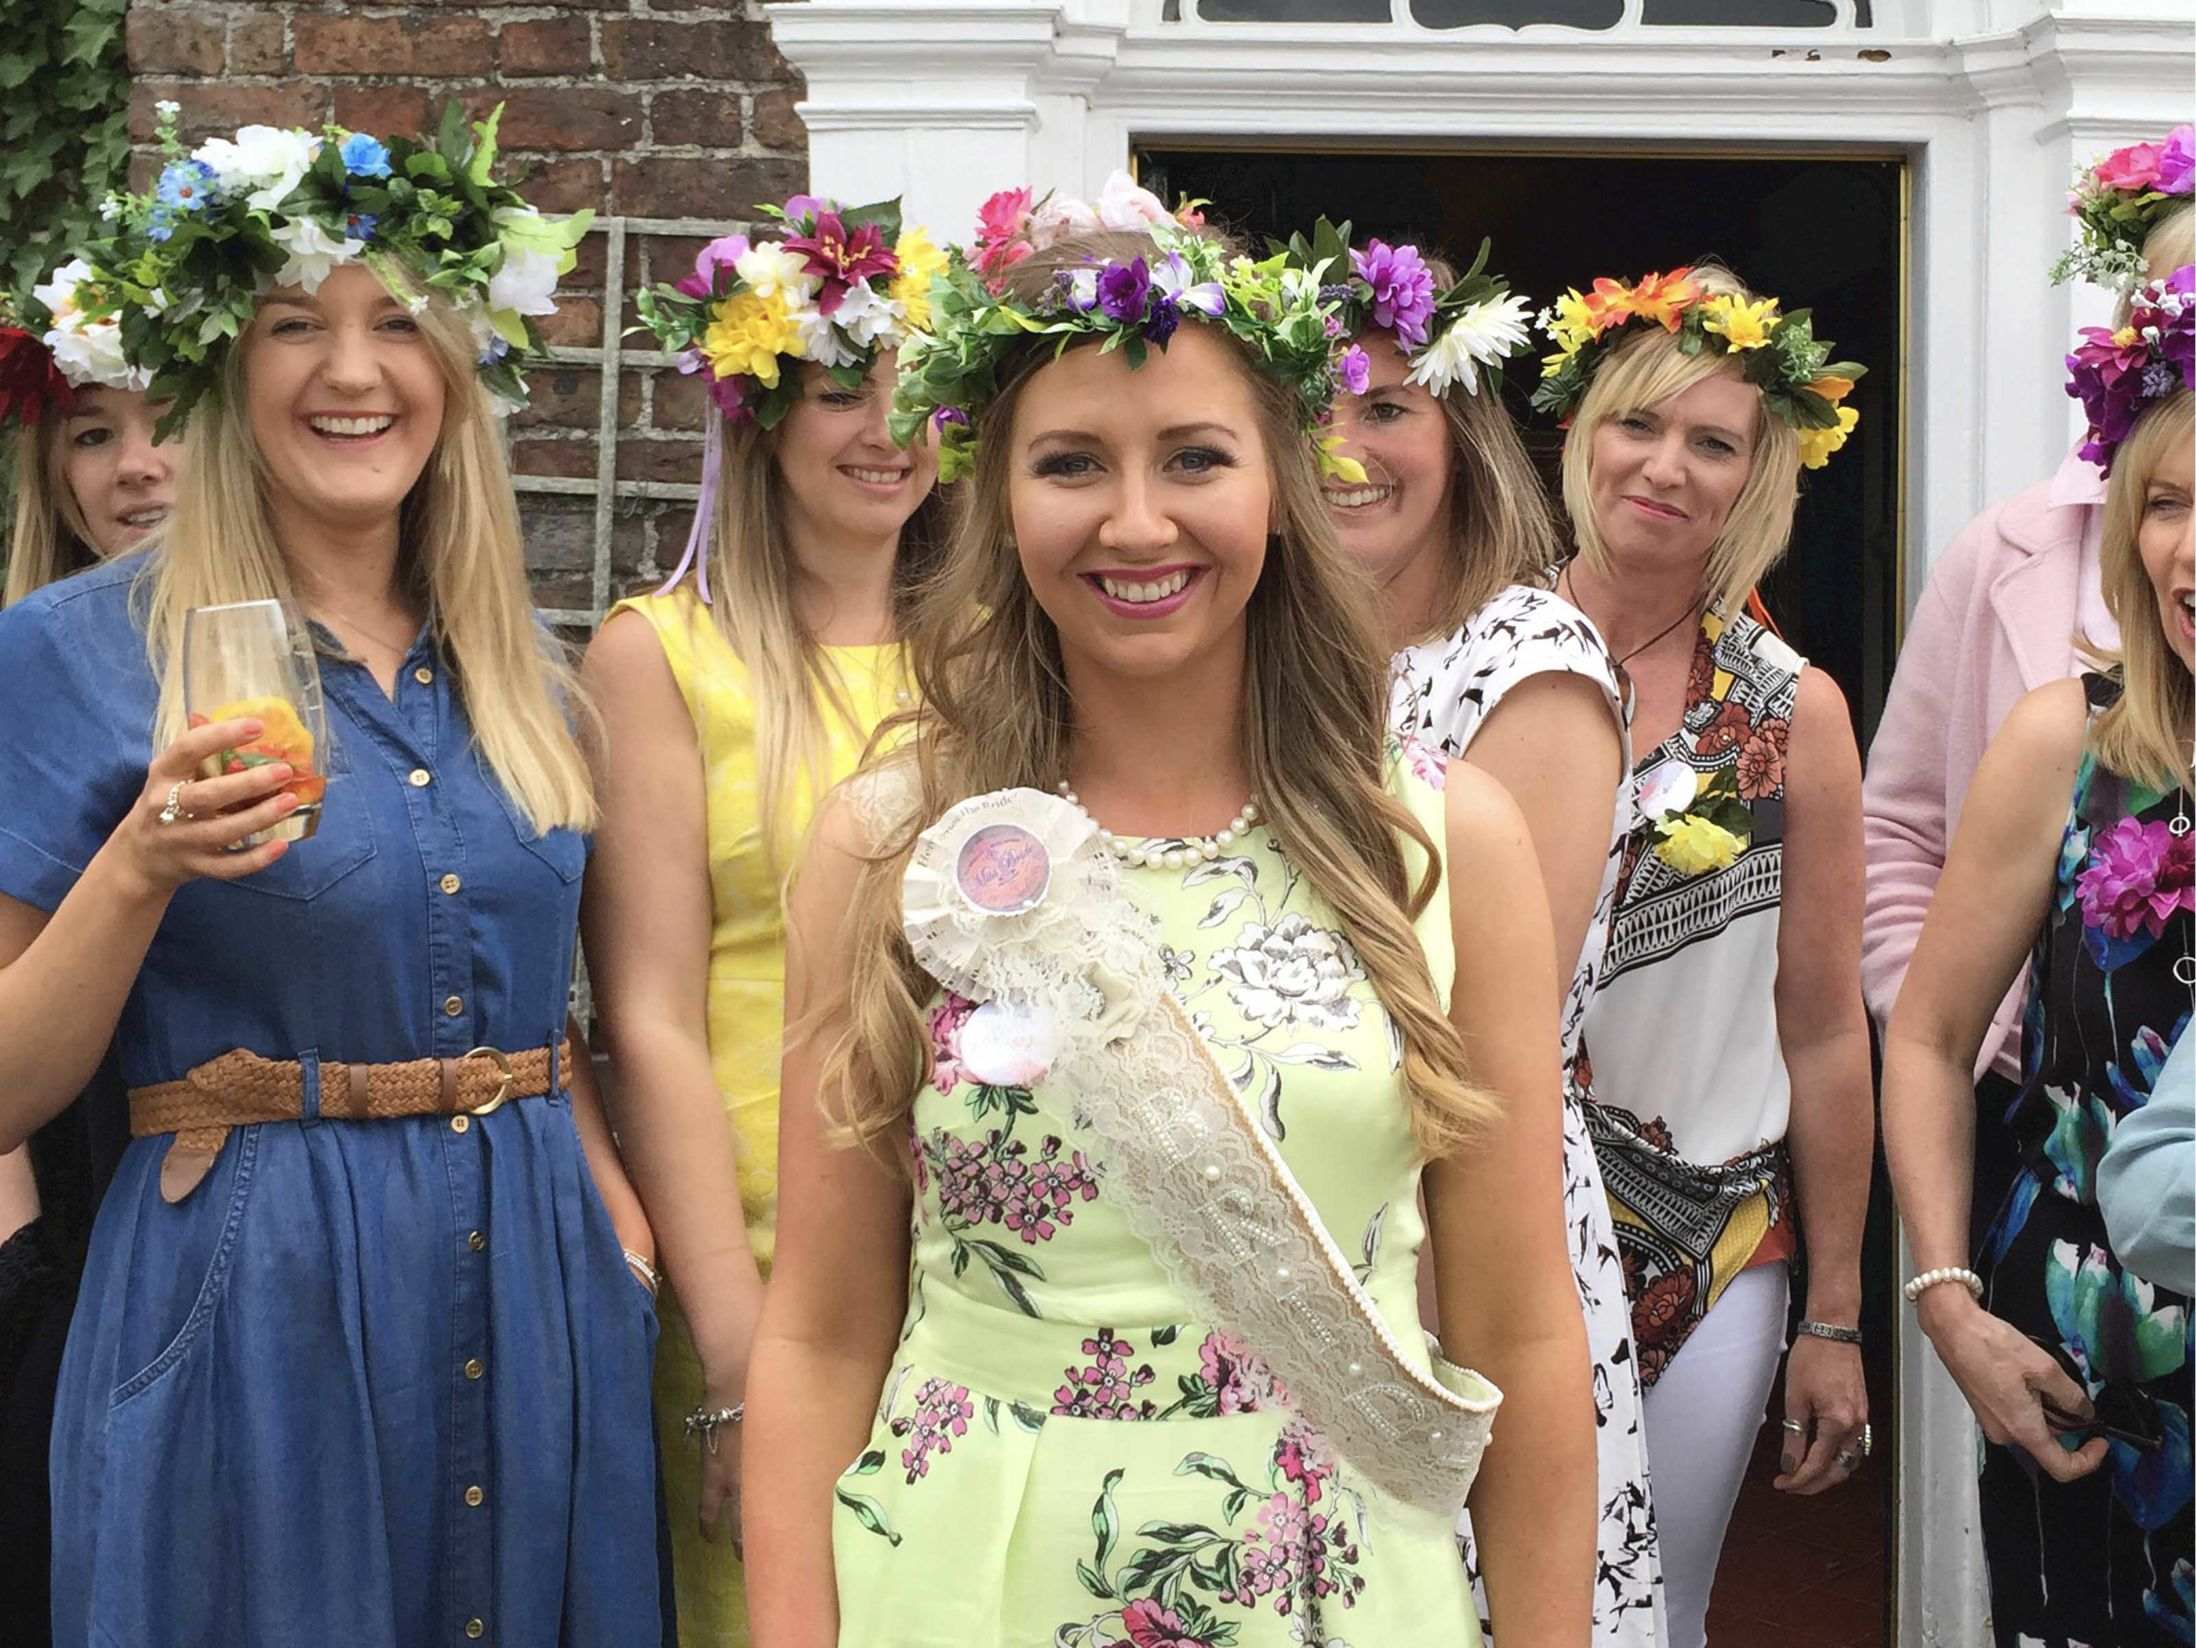 Hen Party Ideas for Mixed Ages - Mobile Flower Crown Making